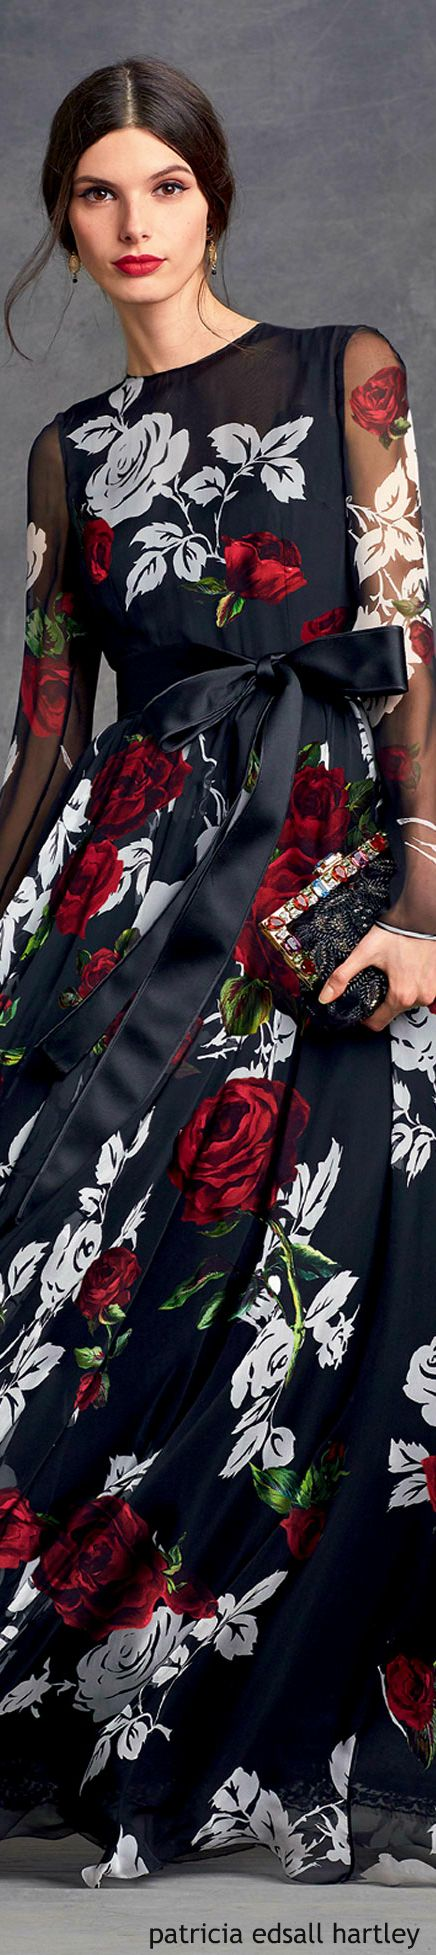 OUTFIT INSPIRATION: Black Dress with Red and White Rose Pattern + Black Sparkly Clutch! (Dolce & Gabbana - Winter 2016)